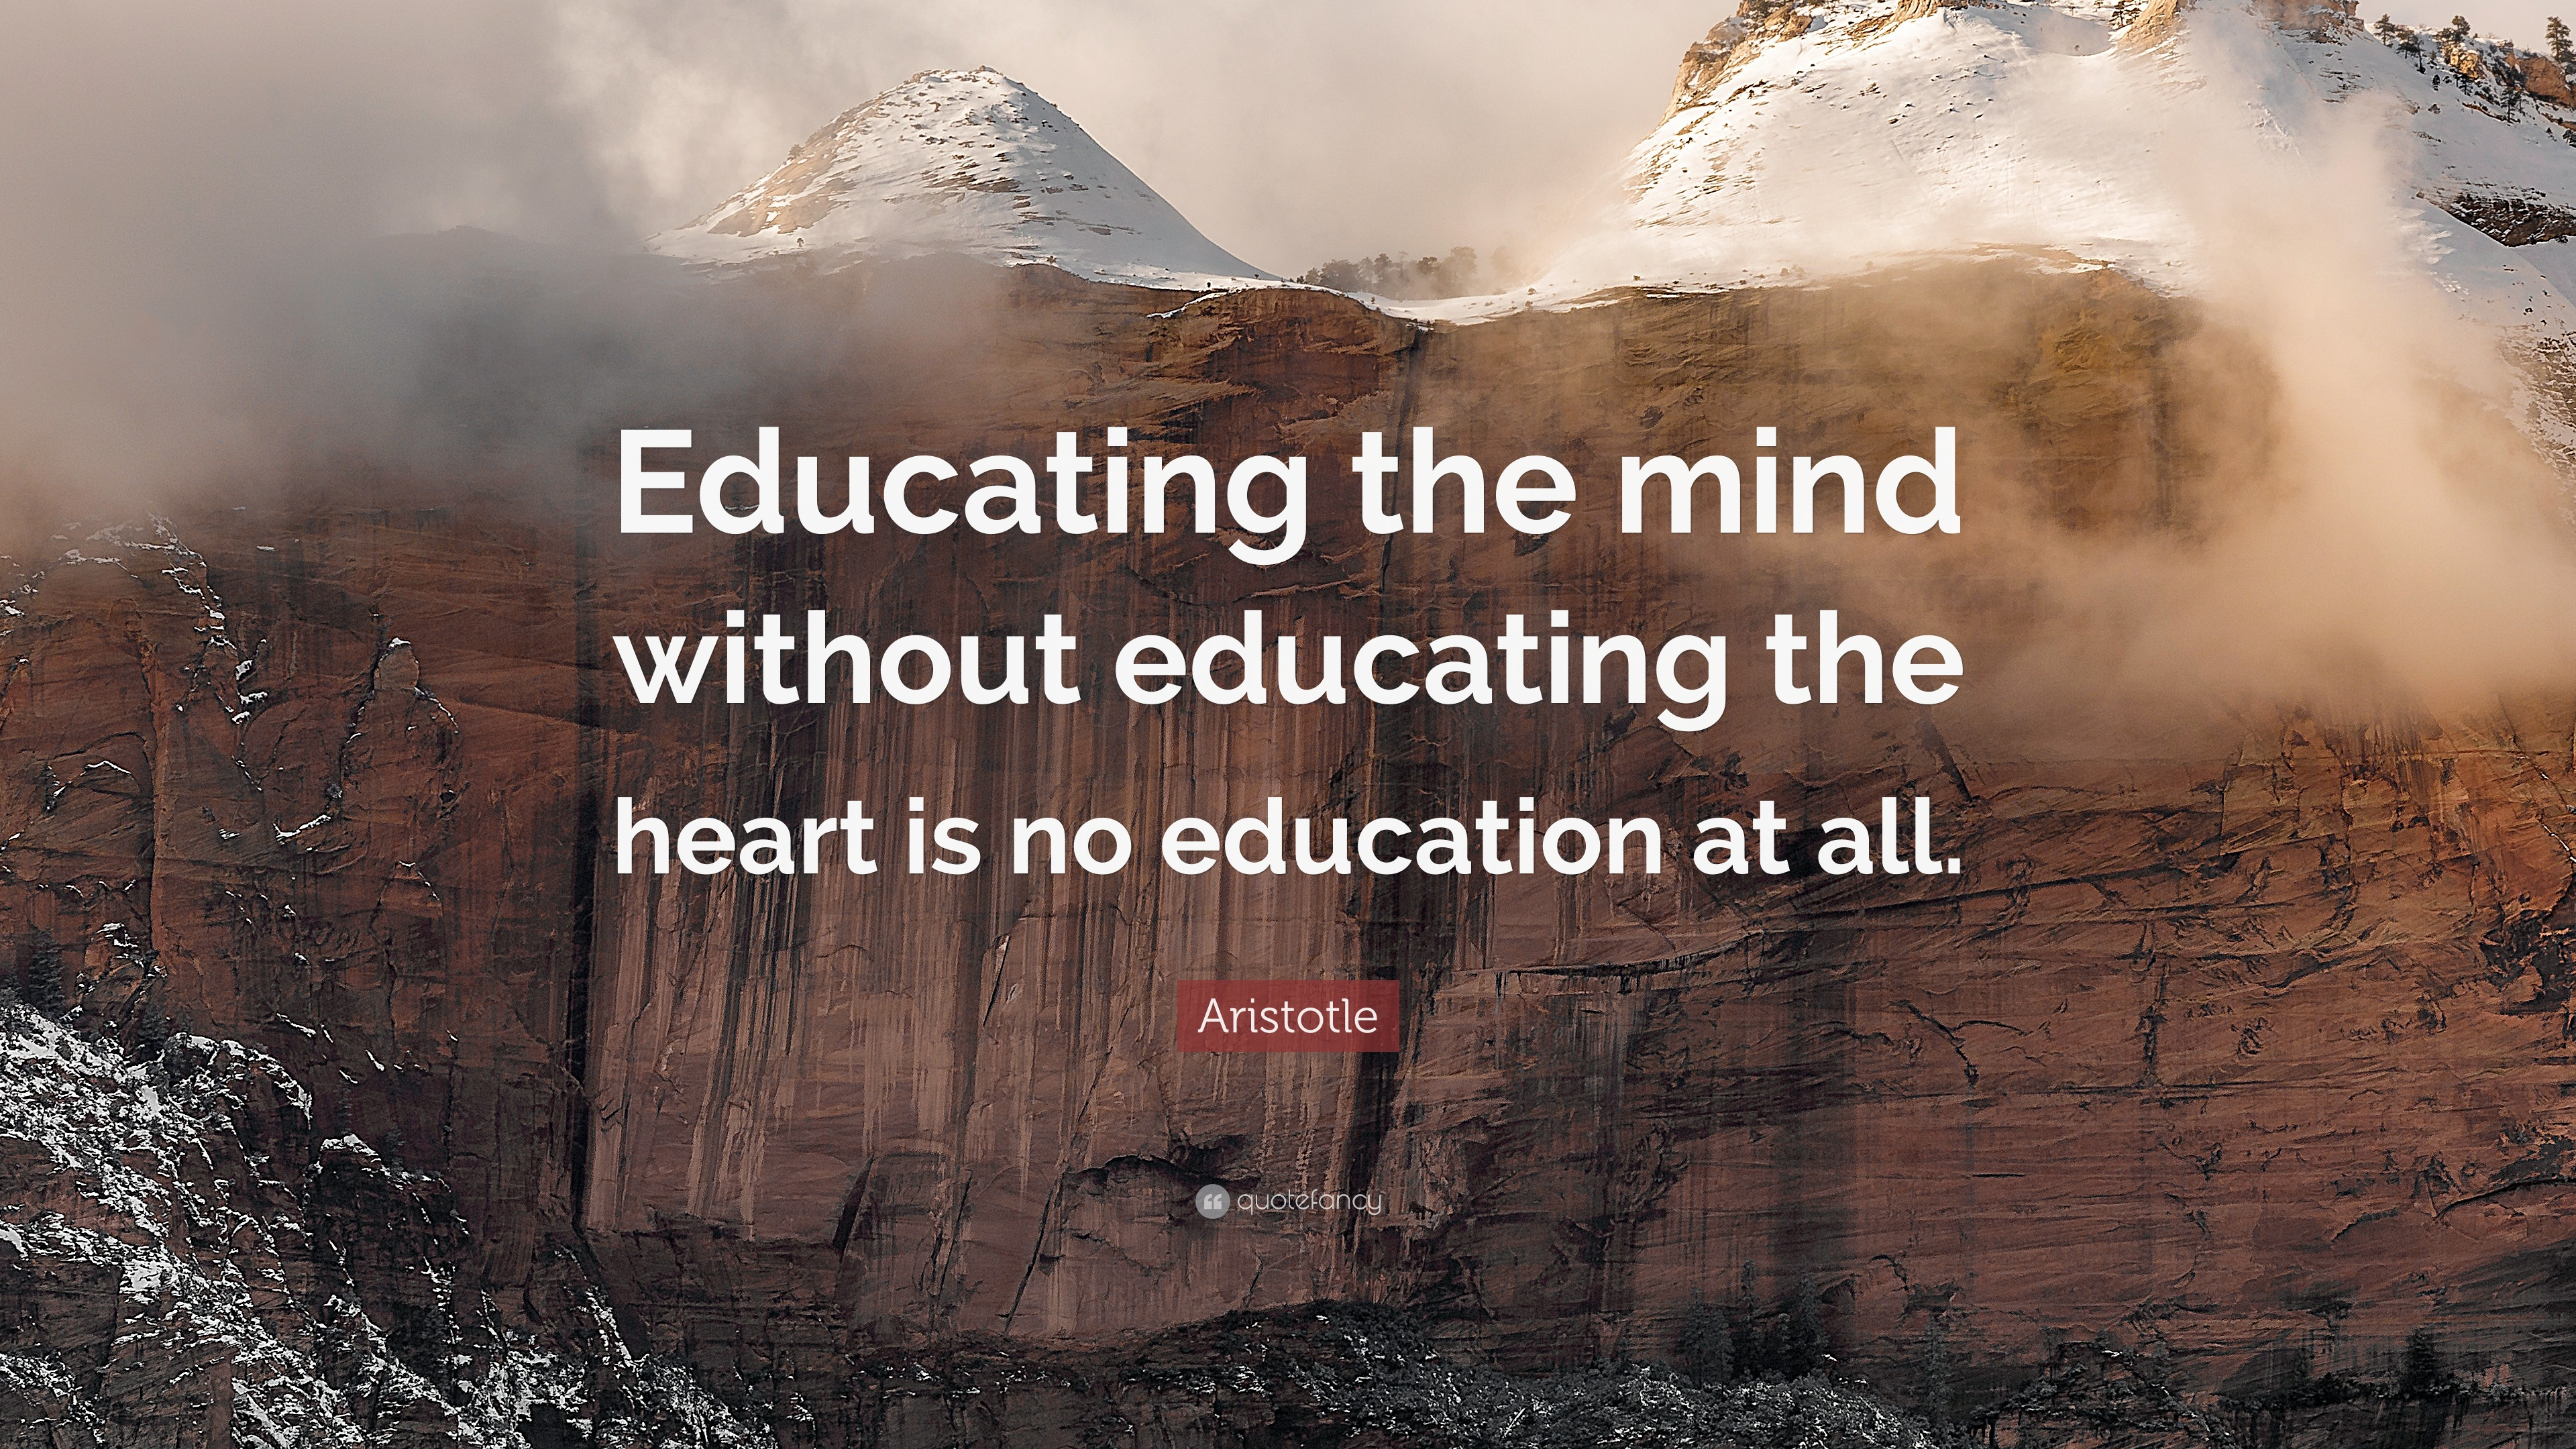 Extraordinary Wallpapers With Quotes Aristotle Quote Educating The Mind Without Educating The